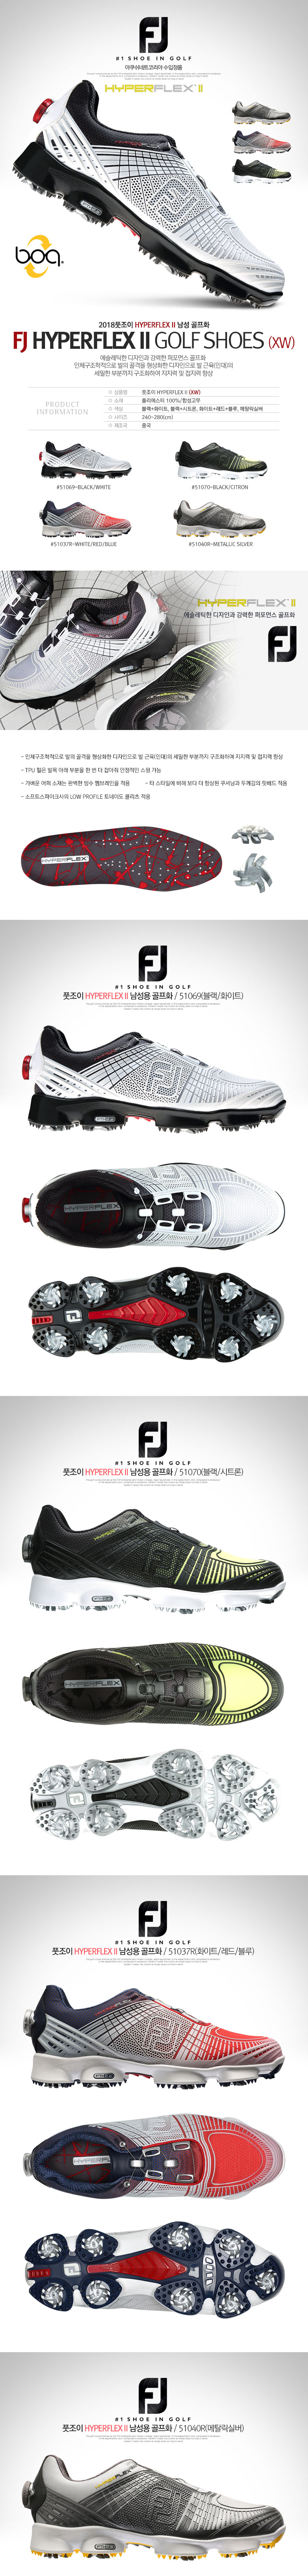 fj_18hyperflex2_shoes.jpg